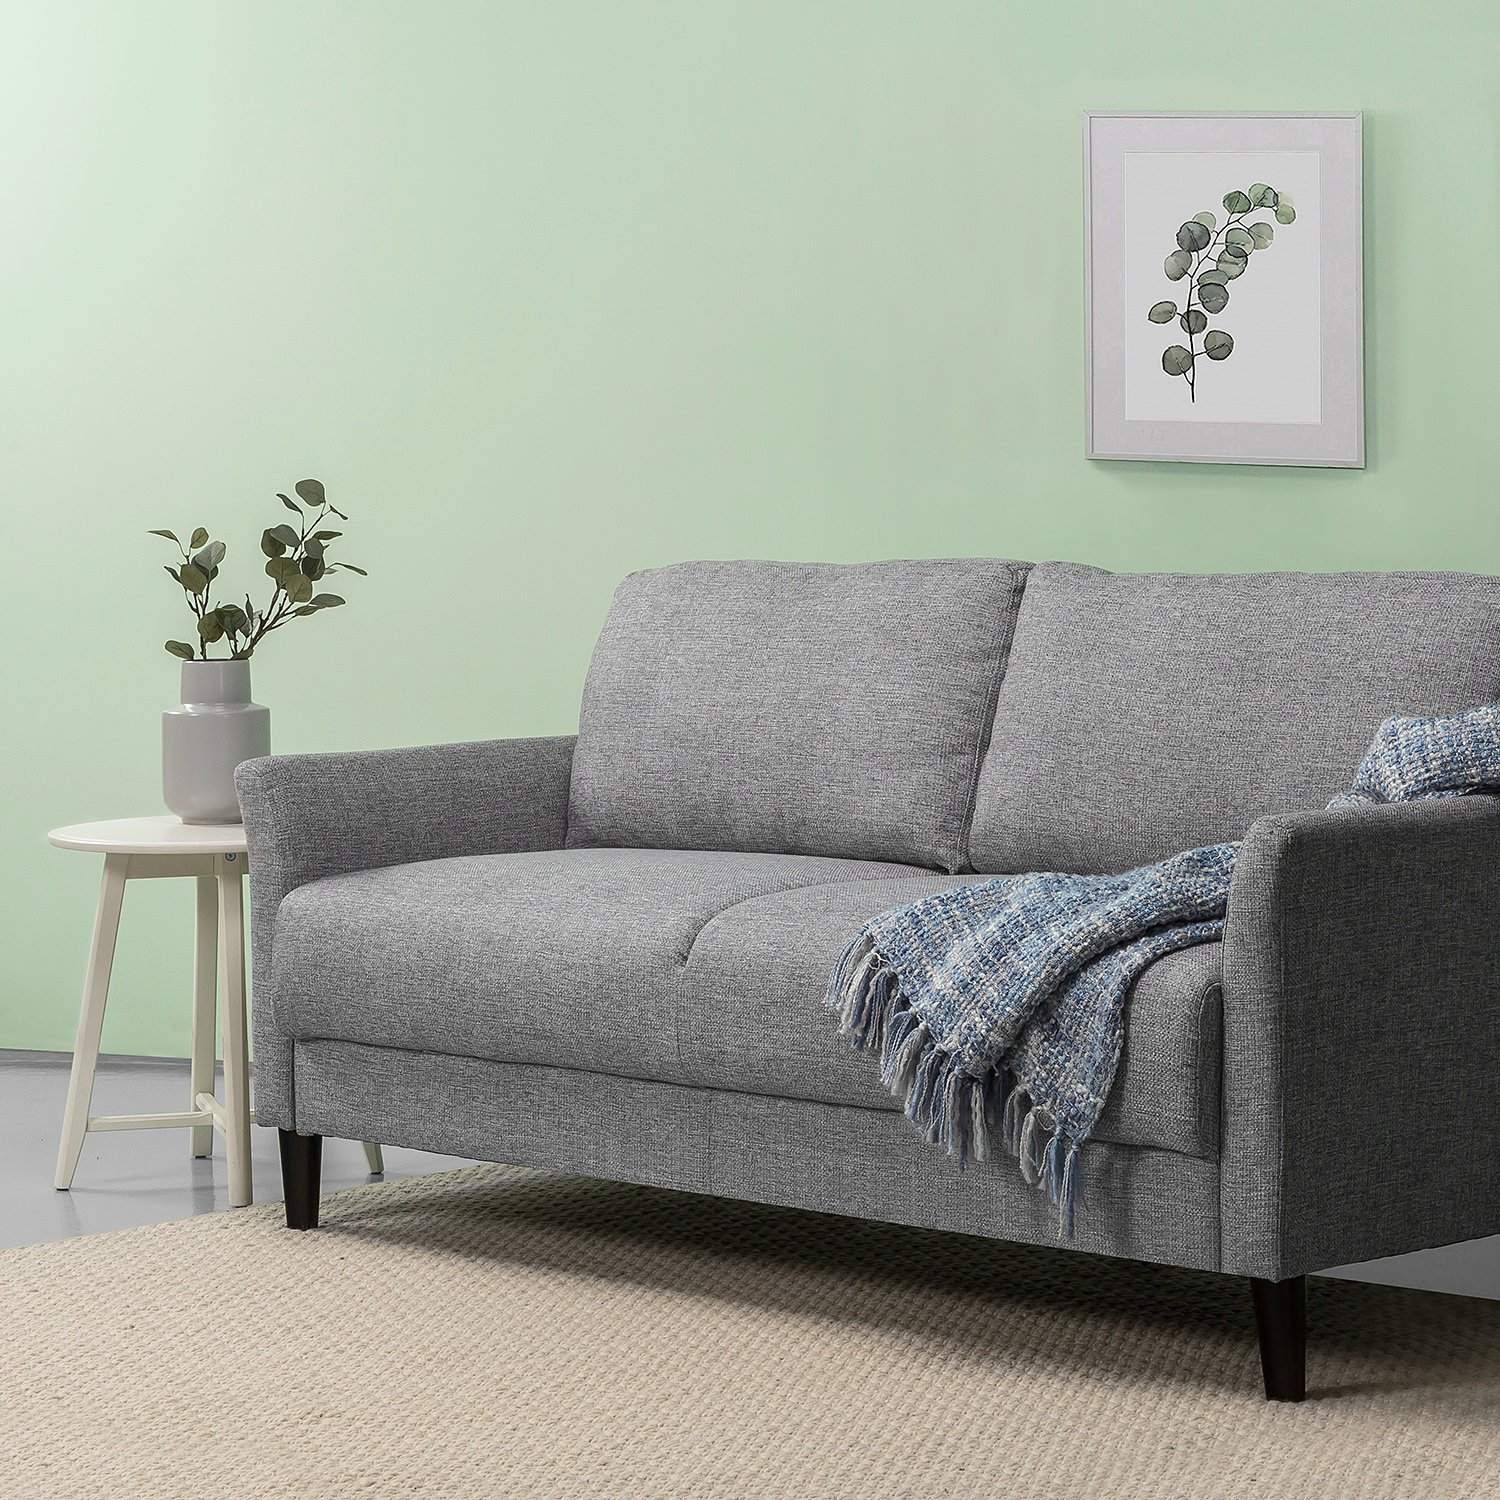 No Couch Living Room: Zinus Jackie Classic Upholstered 71 Inch Sofa / Living